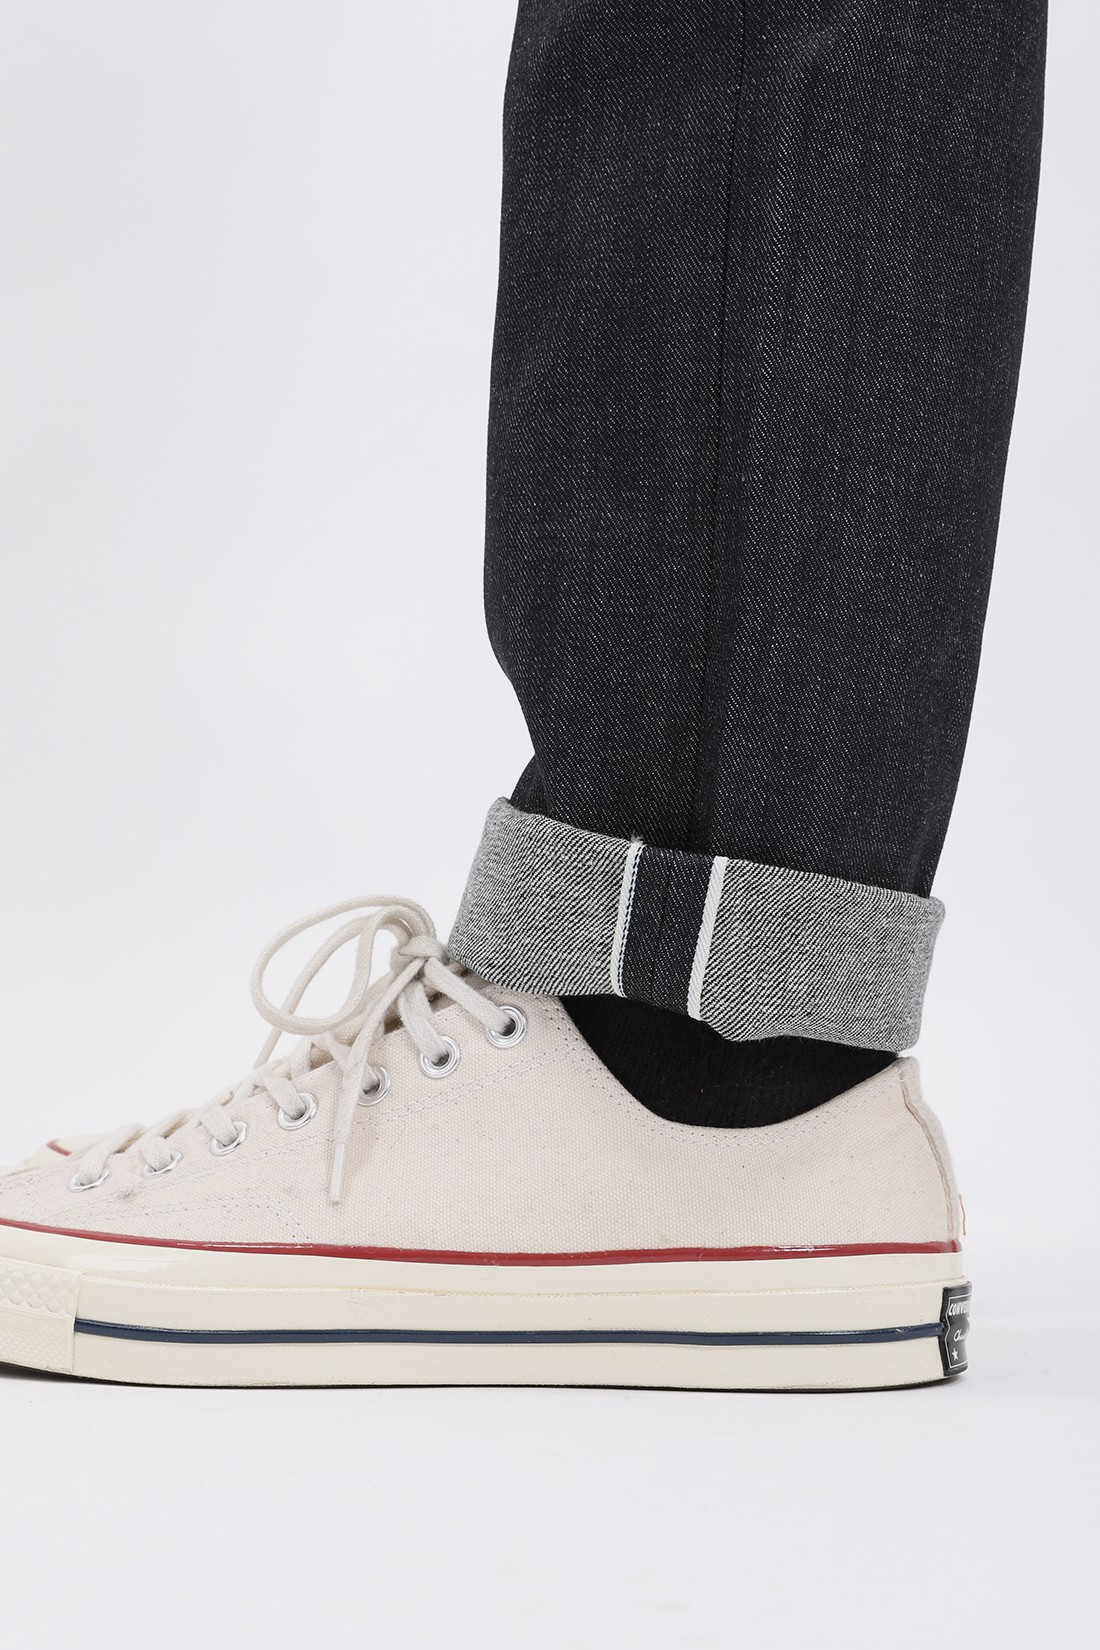 NAKED AND FAMOUS / Super guy left hand twill Selvedge indigo